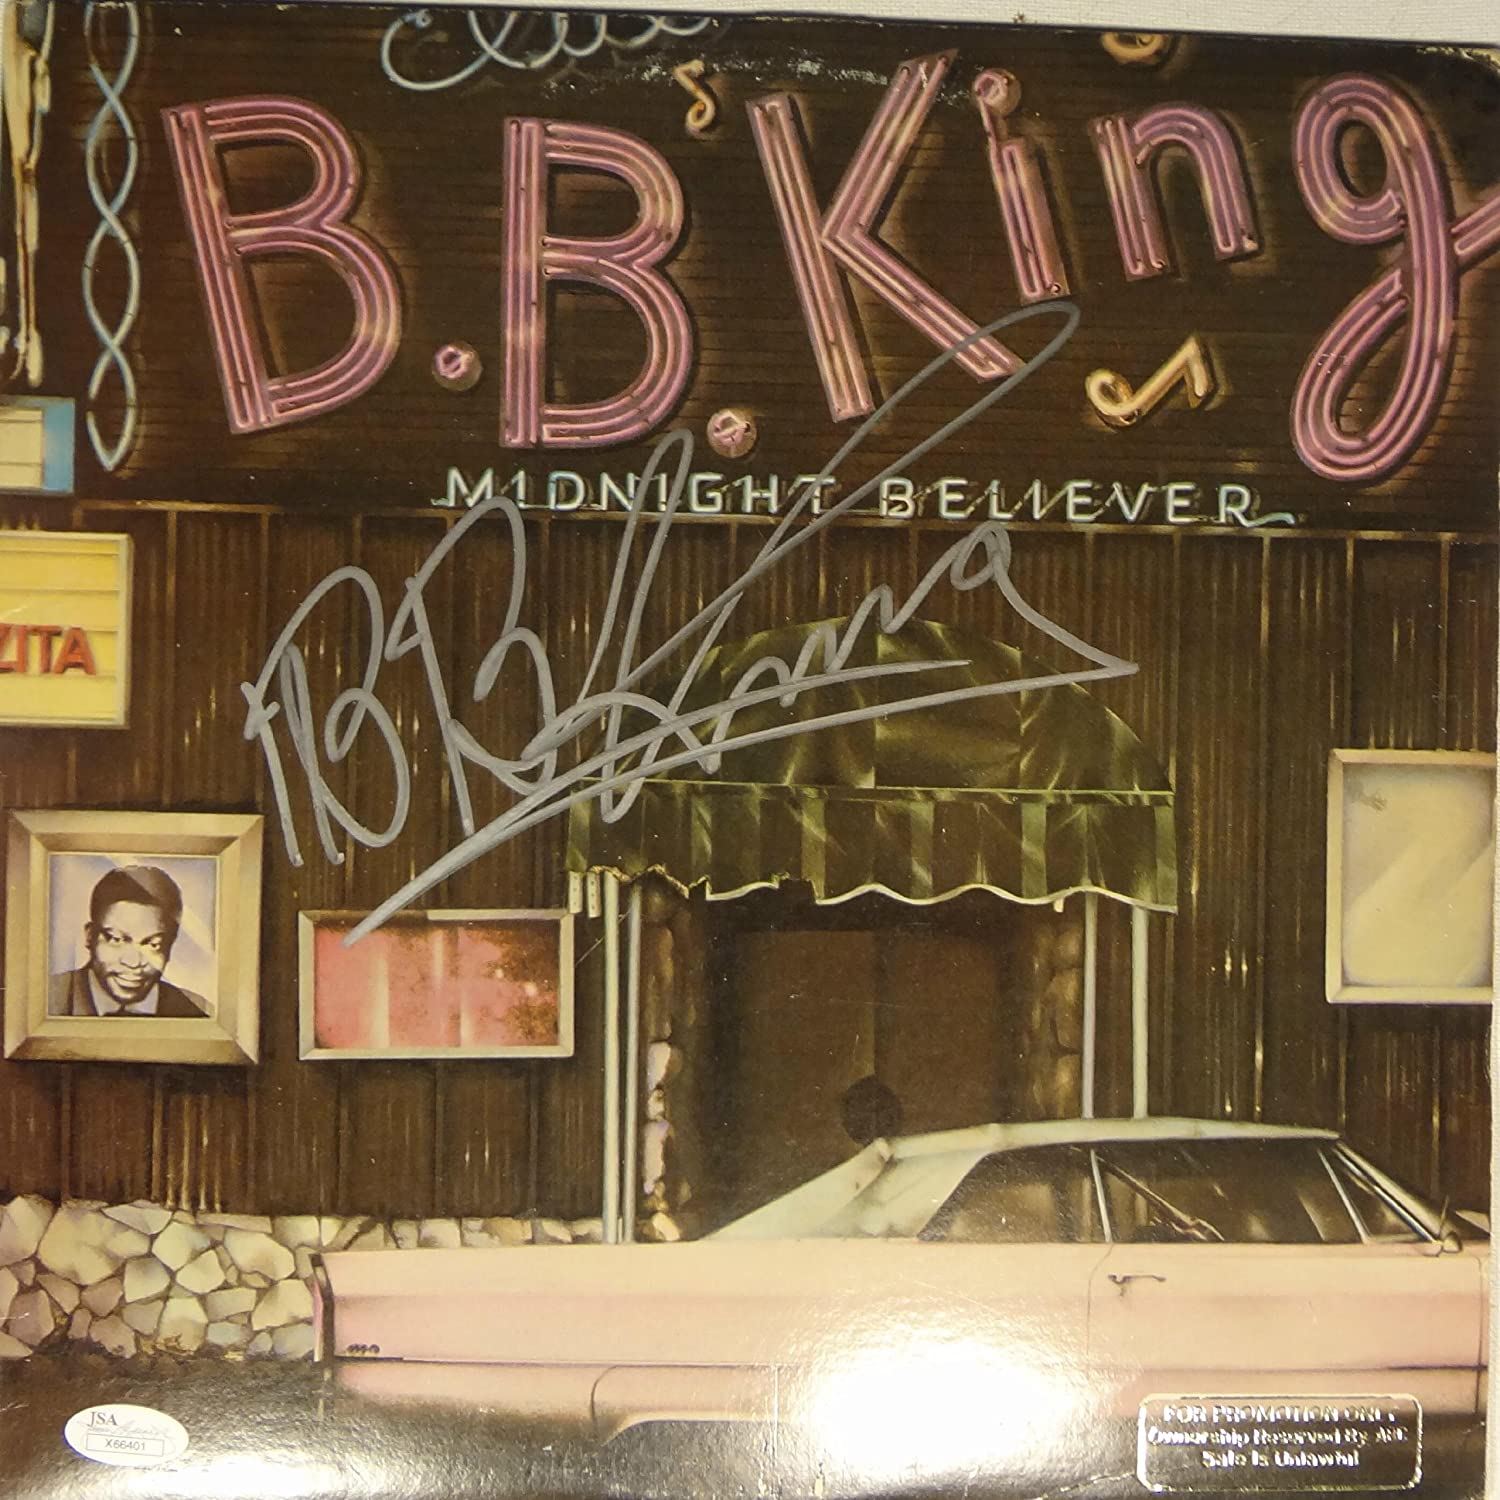 Signed B.B. King Autographed 1978 Midnight Believer Lp Album Jsa Loa # X66401 twice sana autographed signed original photo signal 4 6 inches collection freeshipping 012017